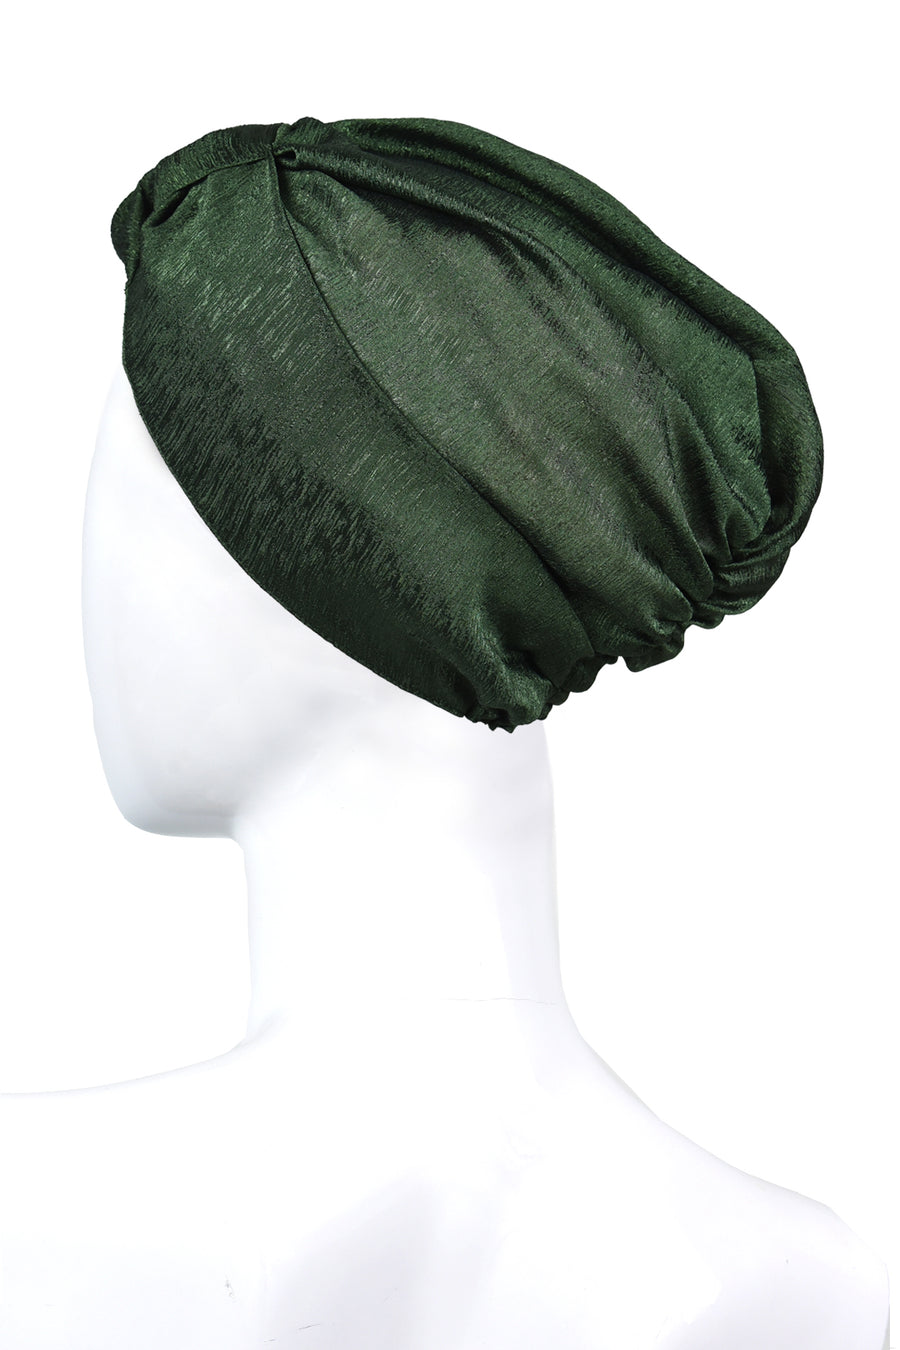 NEW TURBAN DESIGN ! Pont de L' Alma !